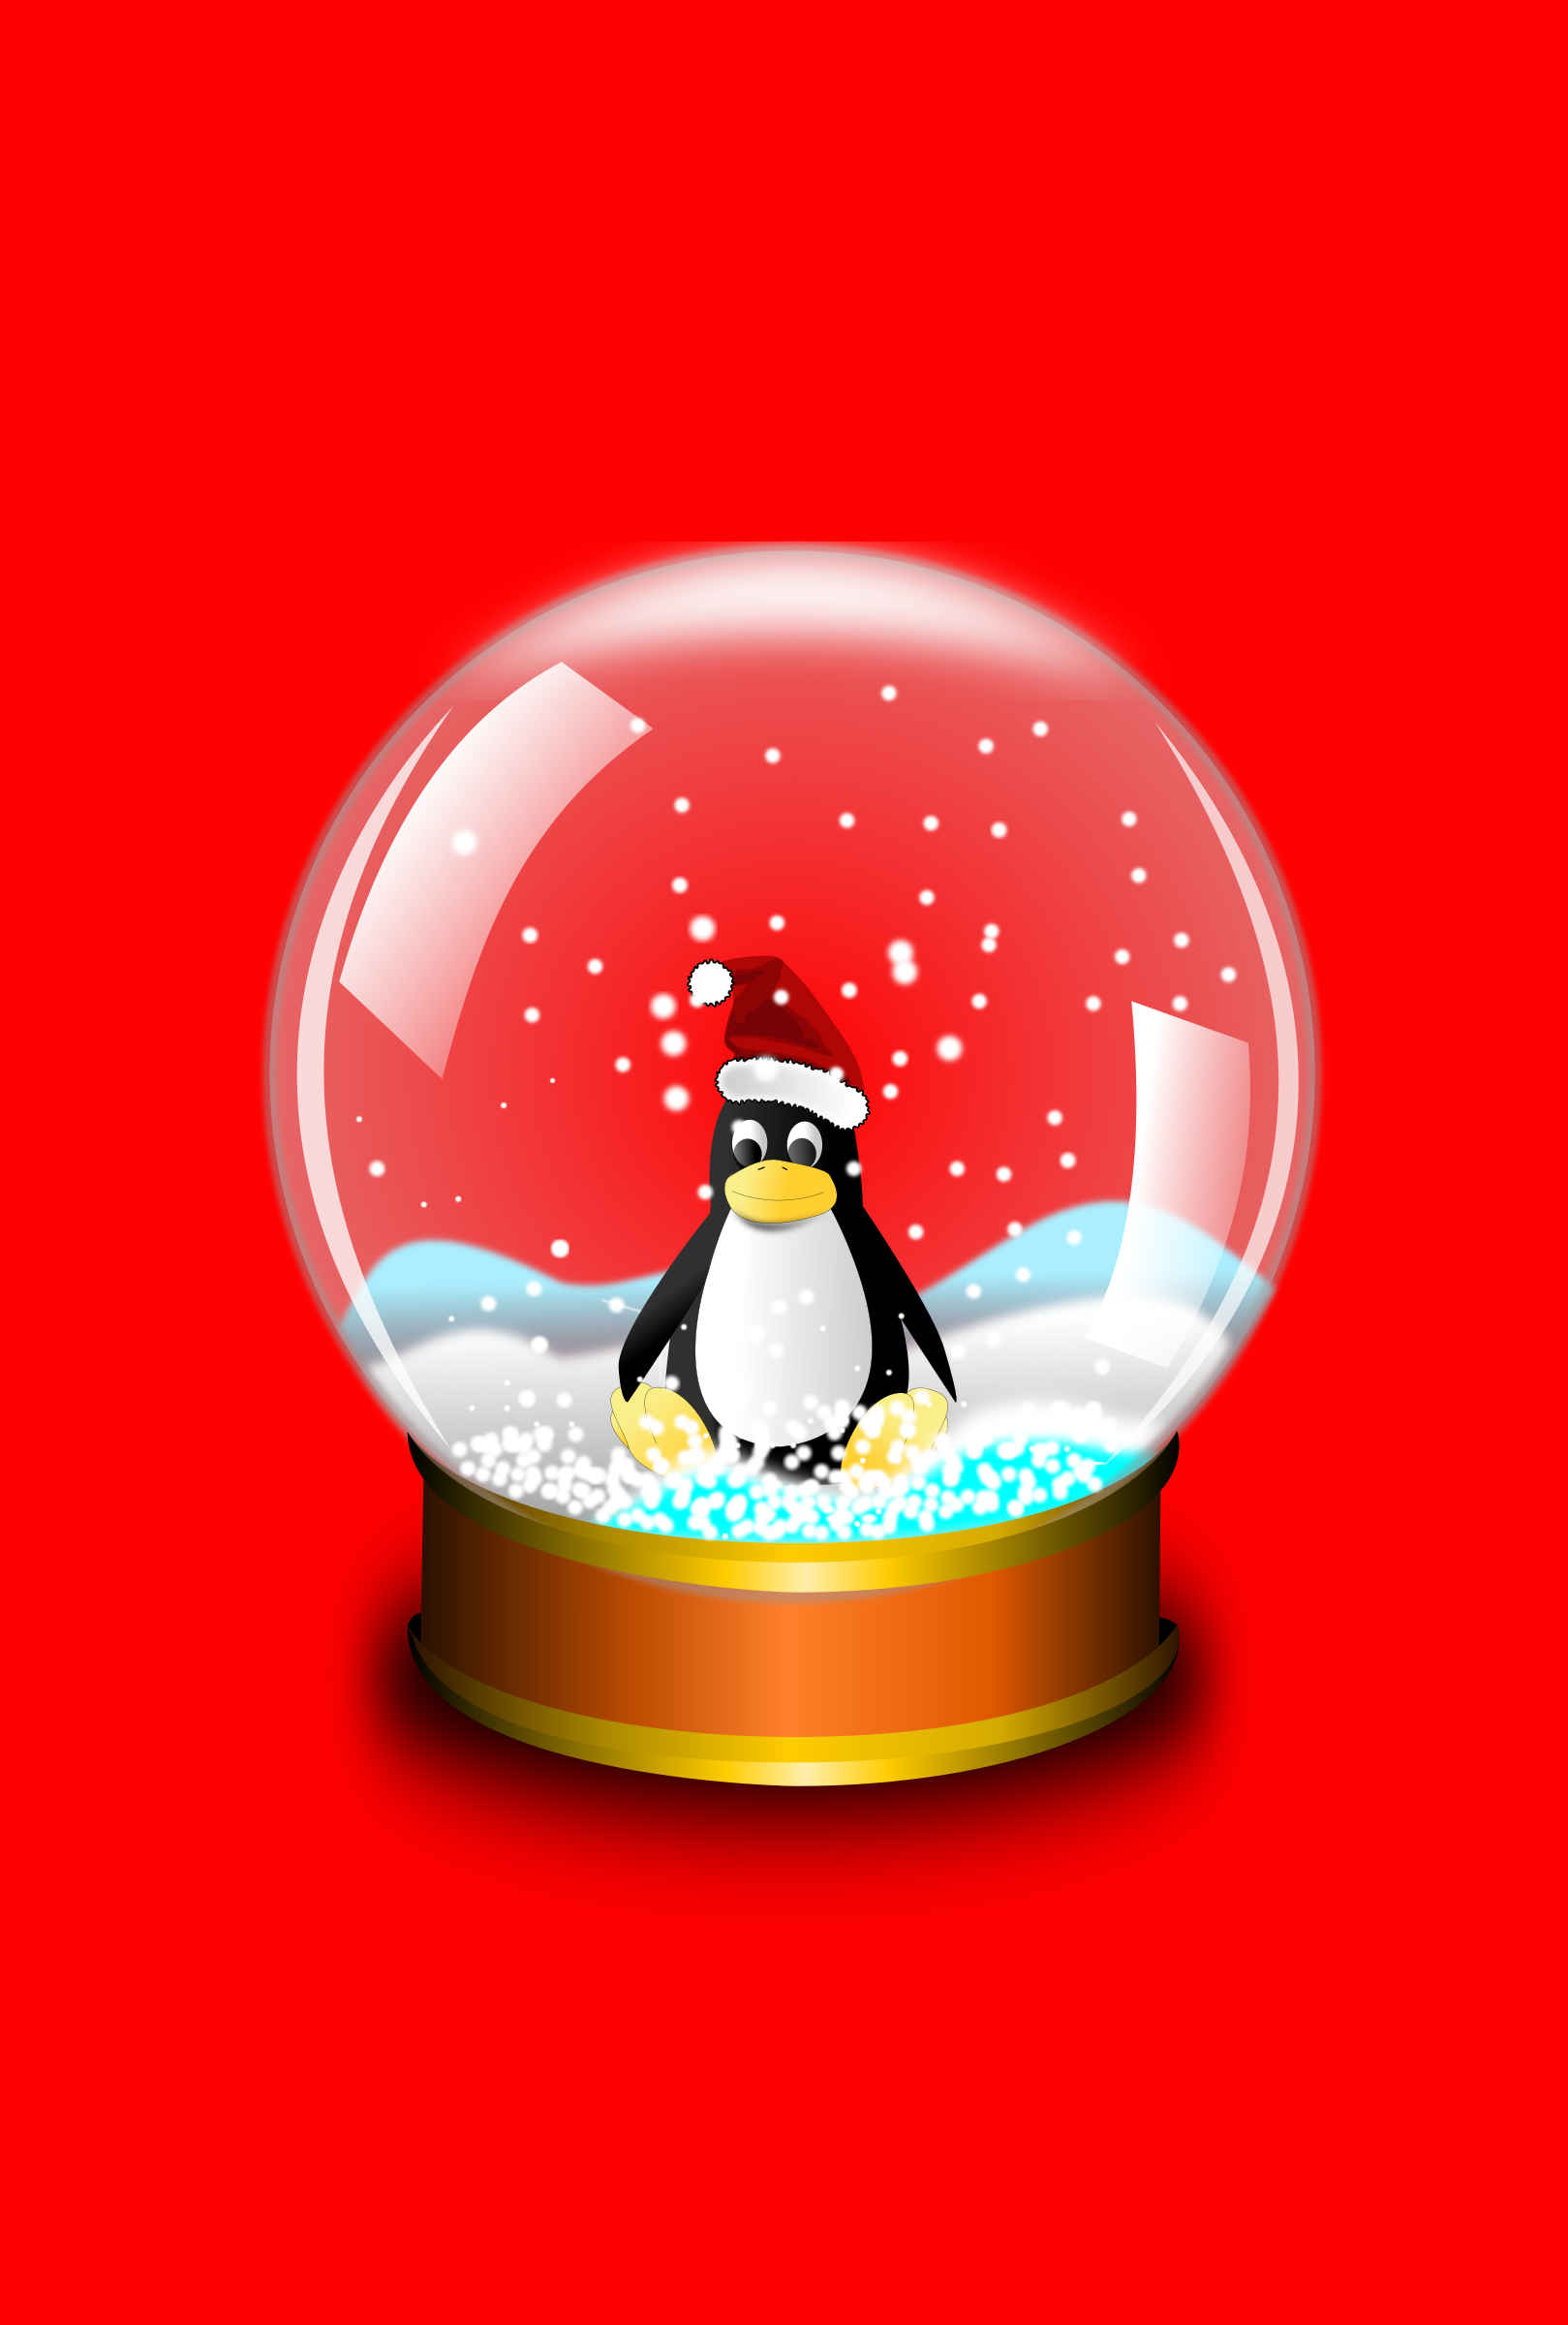 Snow globe by roshellin